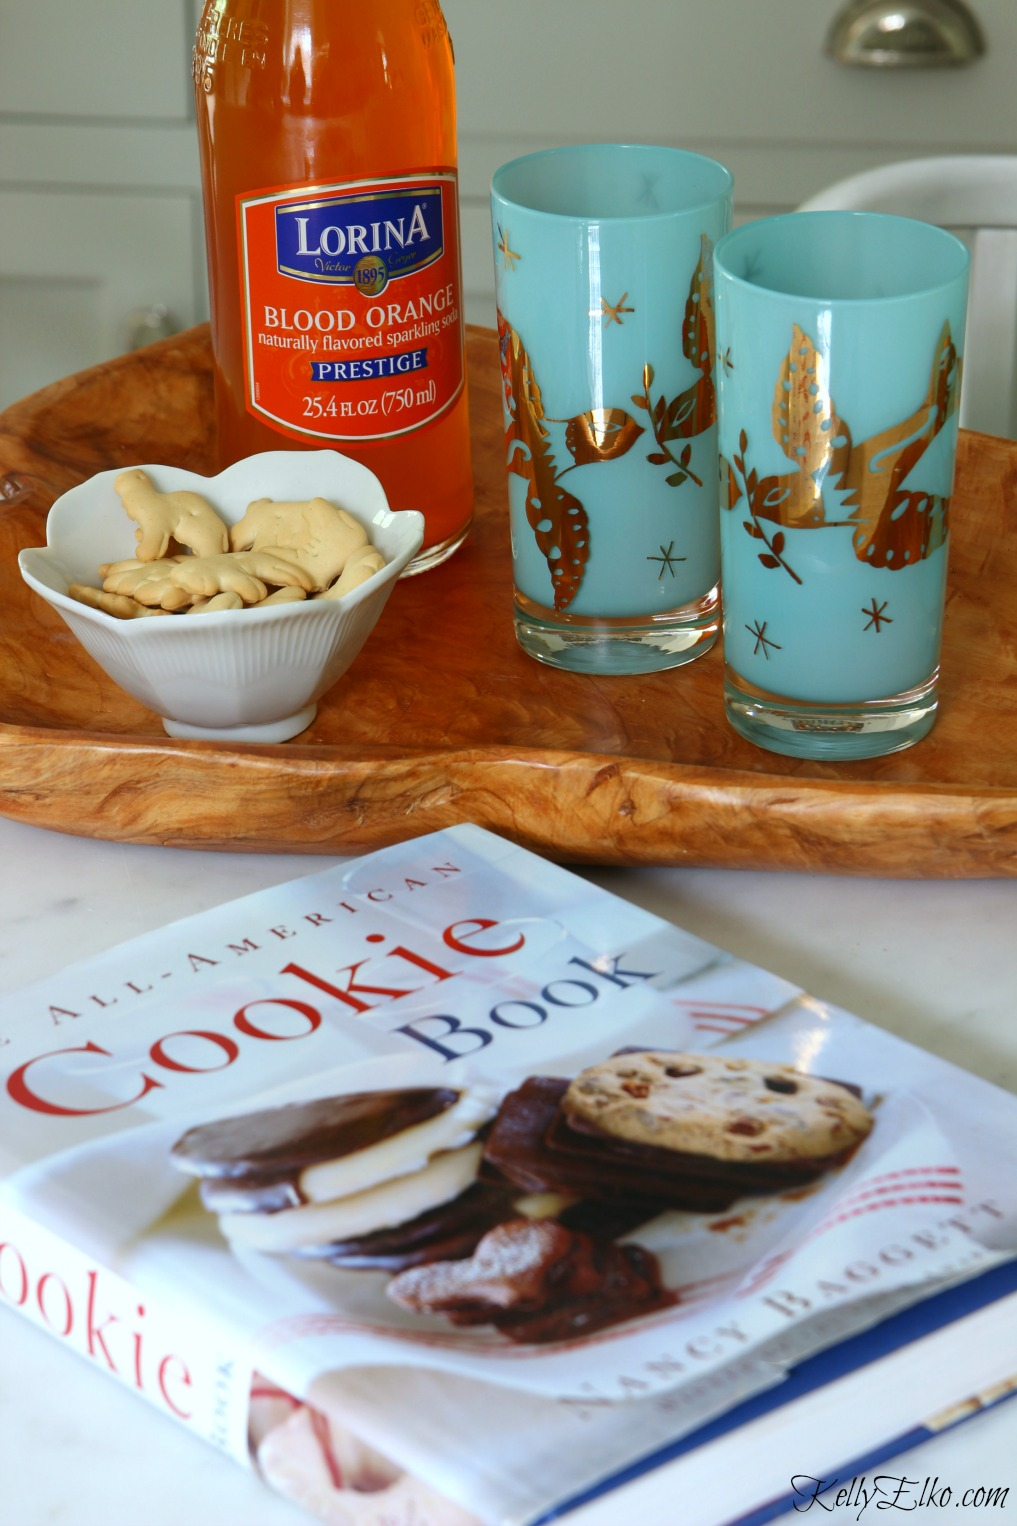 Cookie baking - love this cookbook for making unique and tasty cookies for every occasion kellyelko.com